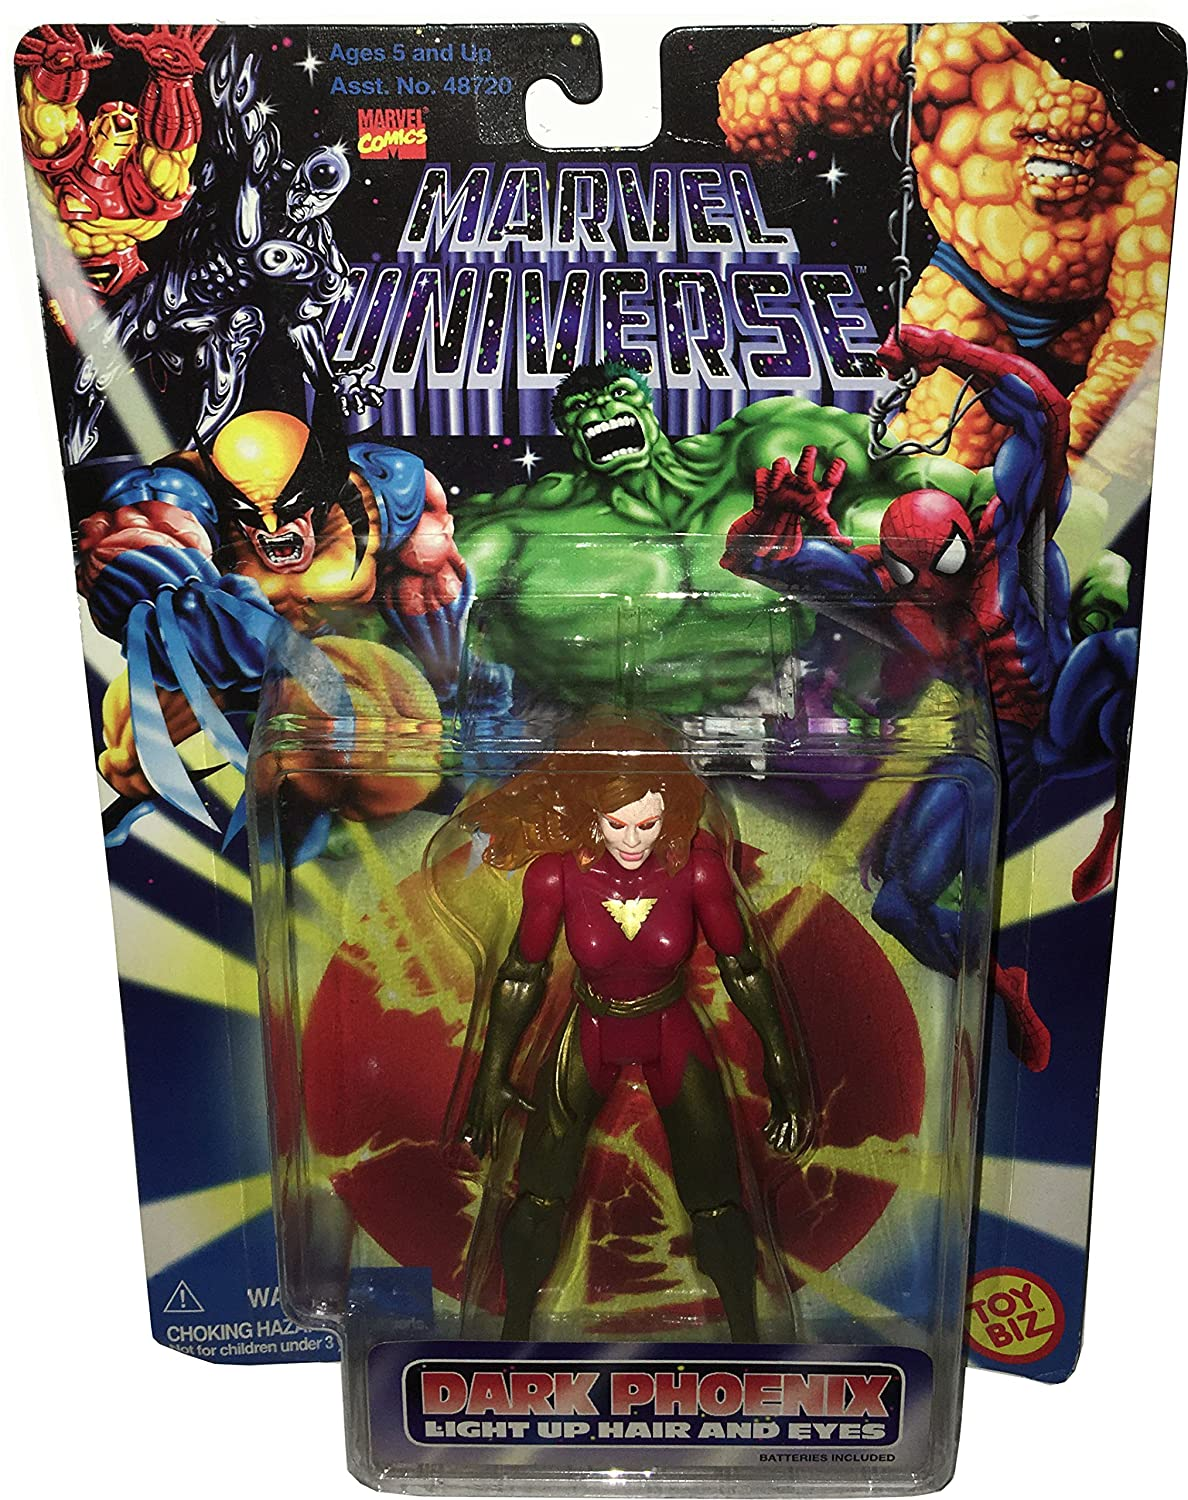 MARVEL UNIVERSE Actionfigur DARK PHOENIX w. Light Up Hair and Eyes